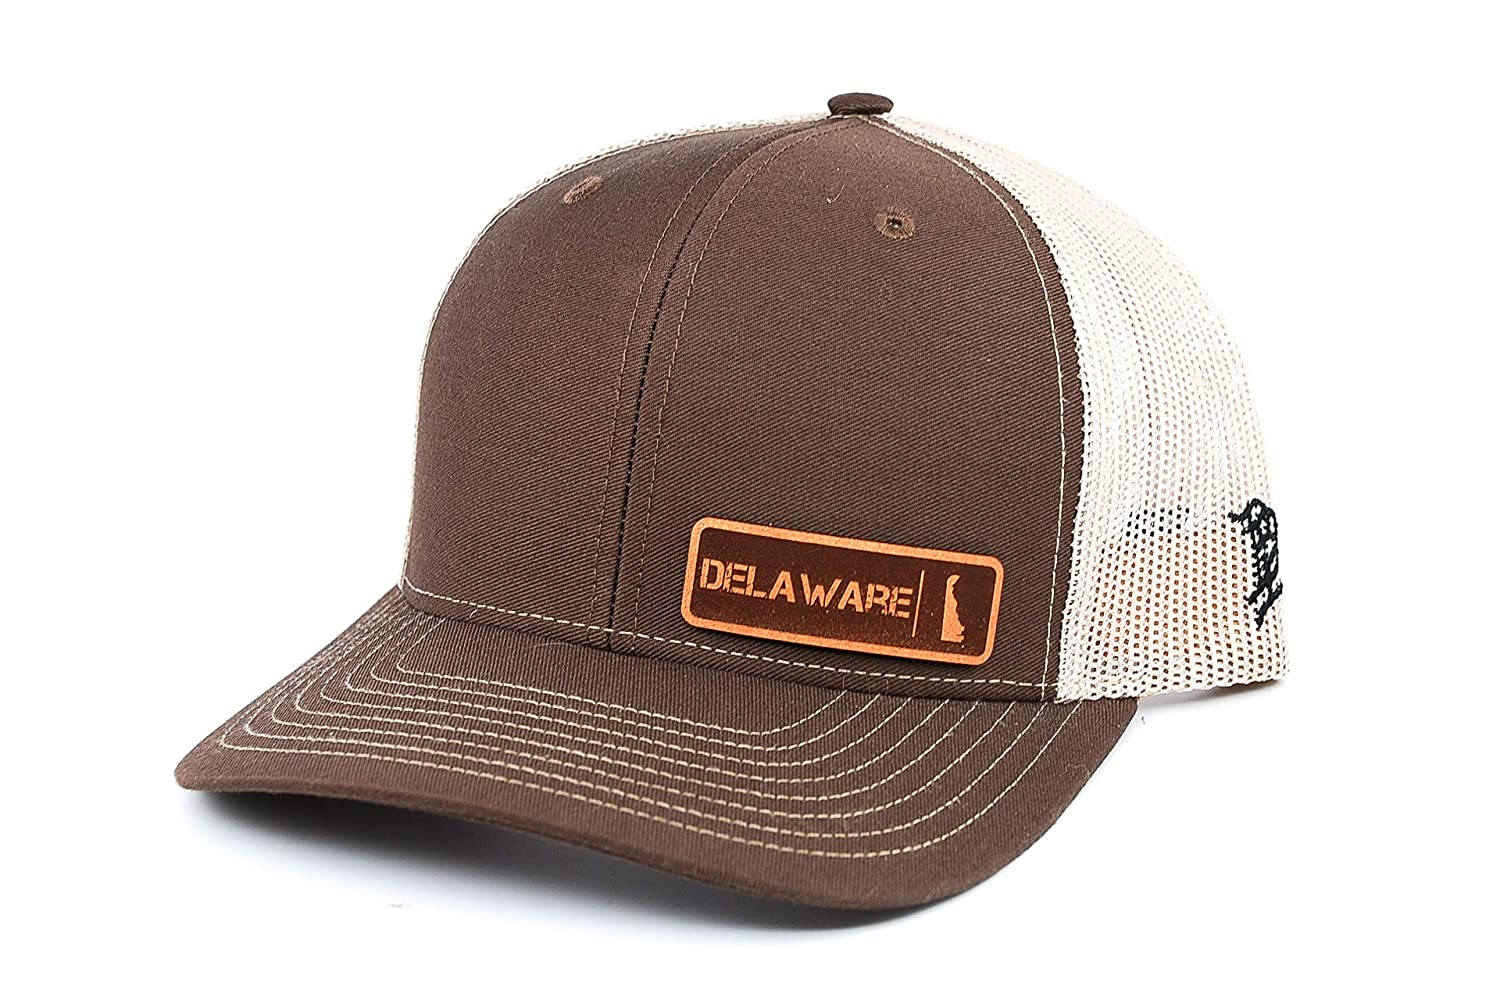 OSFA//Brown//Tan Branded Bills /'Delaware Native Leather Patch Hat Curved Trucker